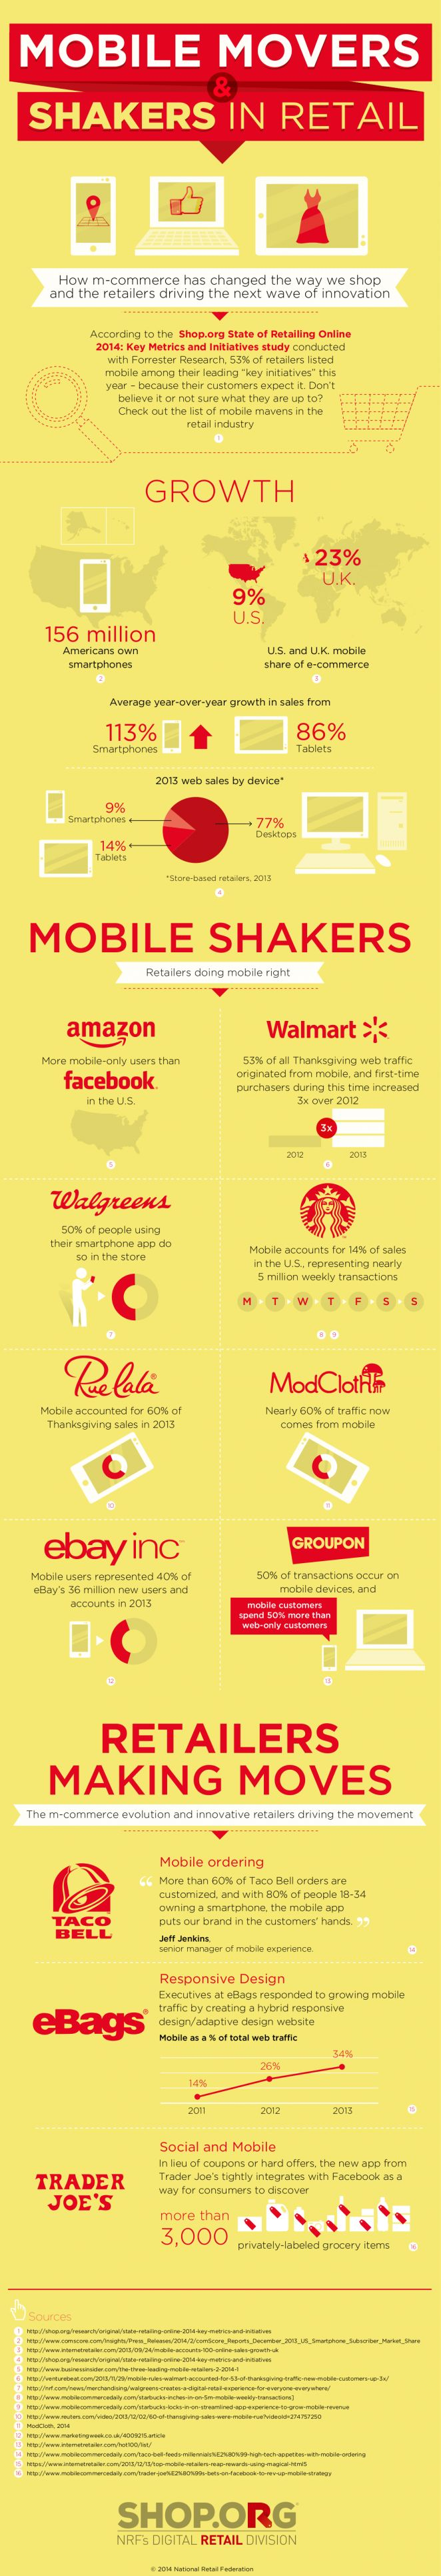 Who Are The Mobile Movers And Shakers In Retail M-Commerce? #Mcommerce #Infographic